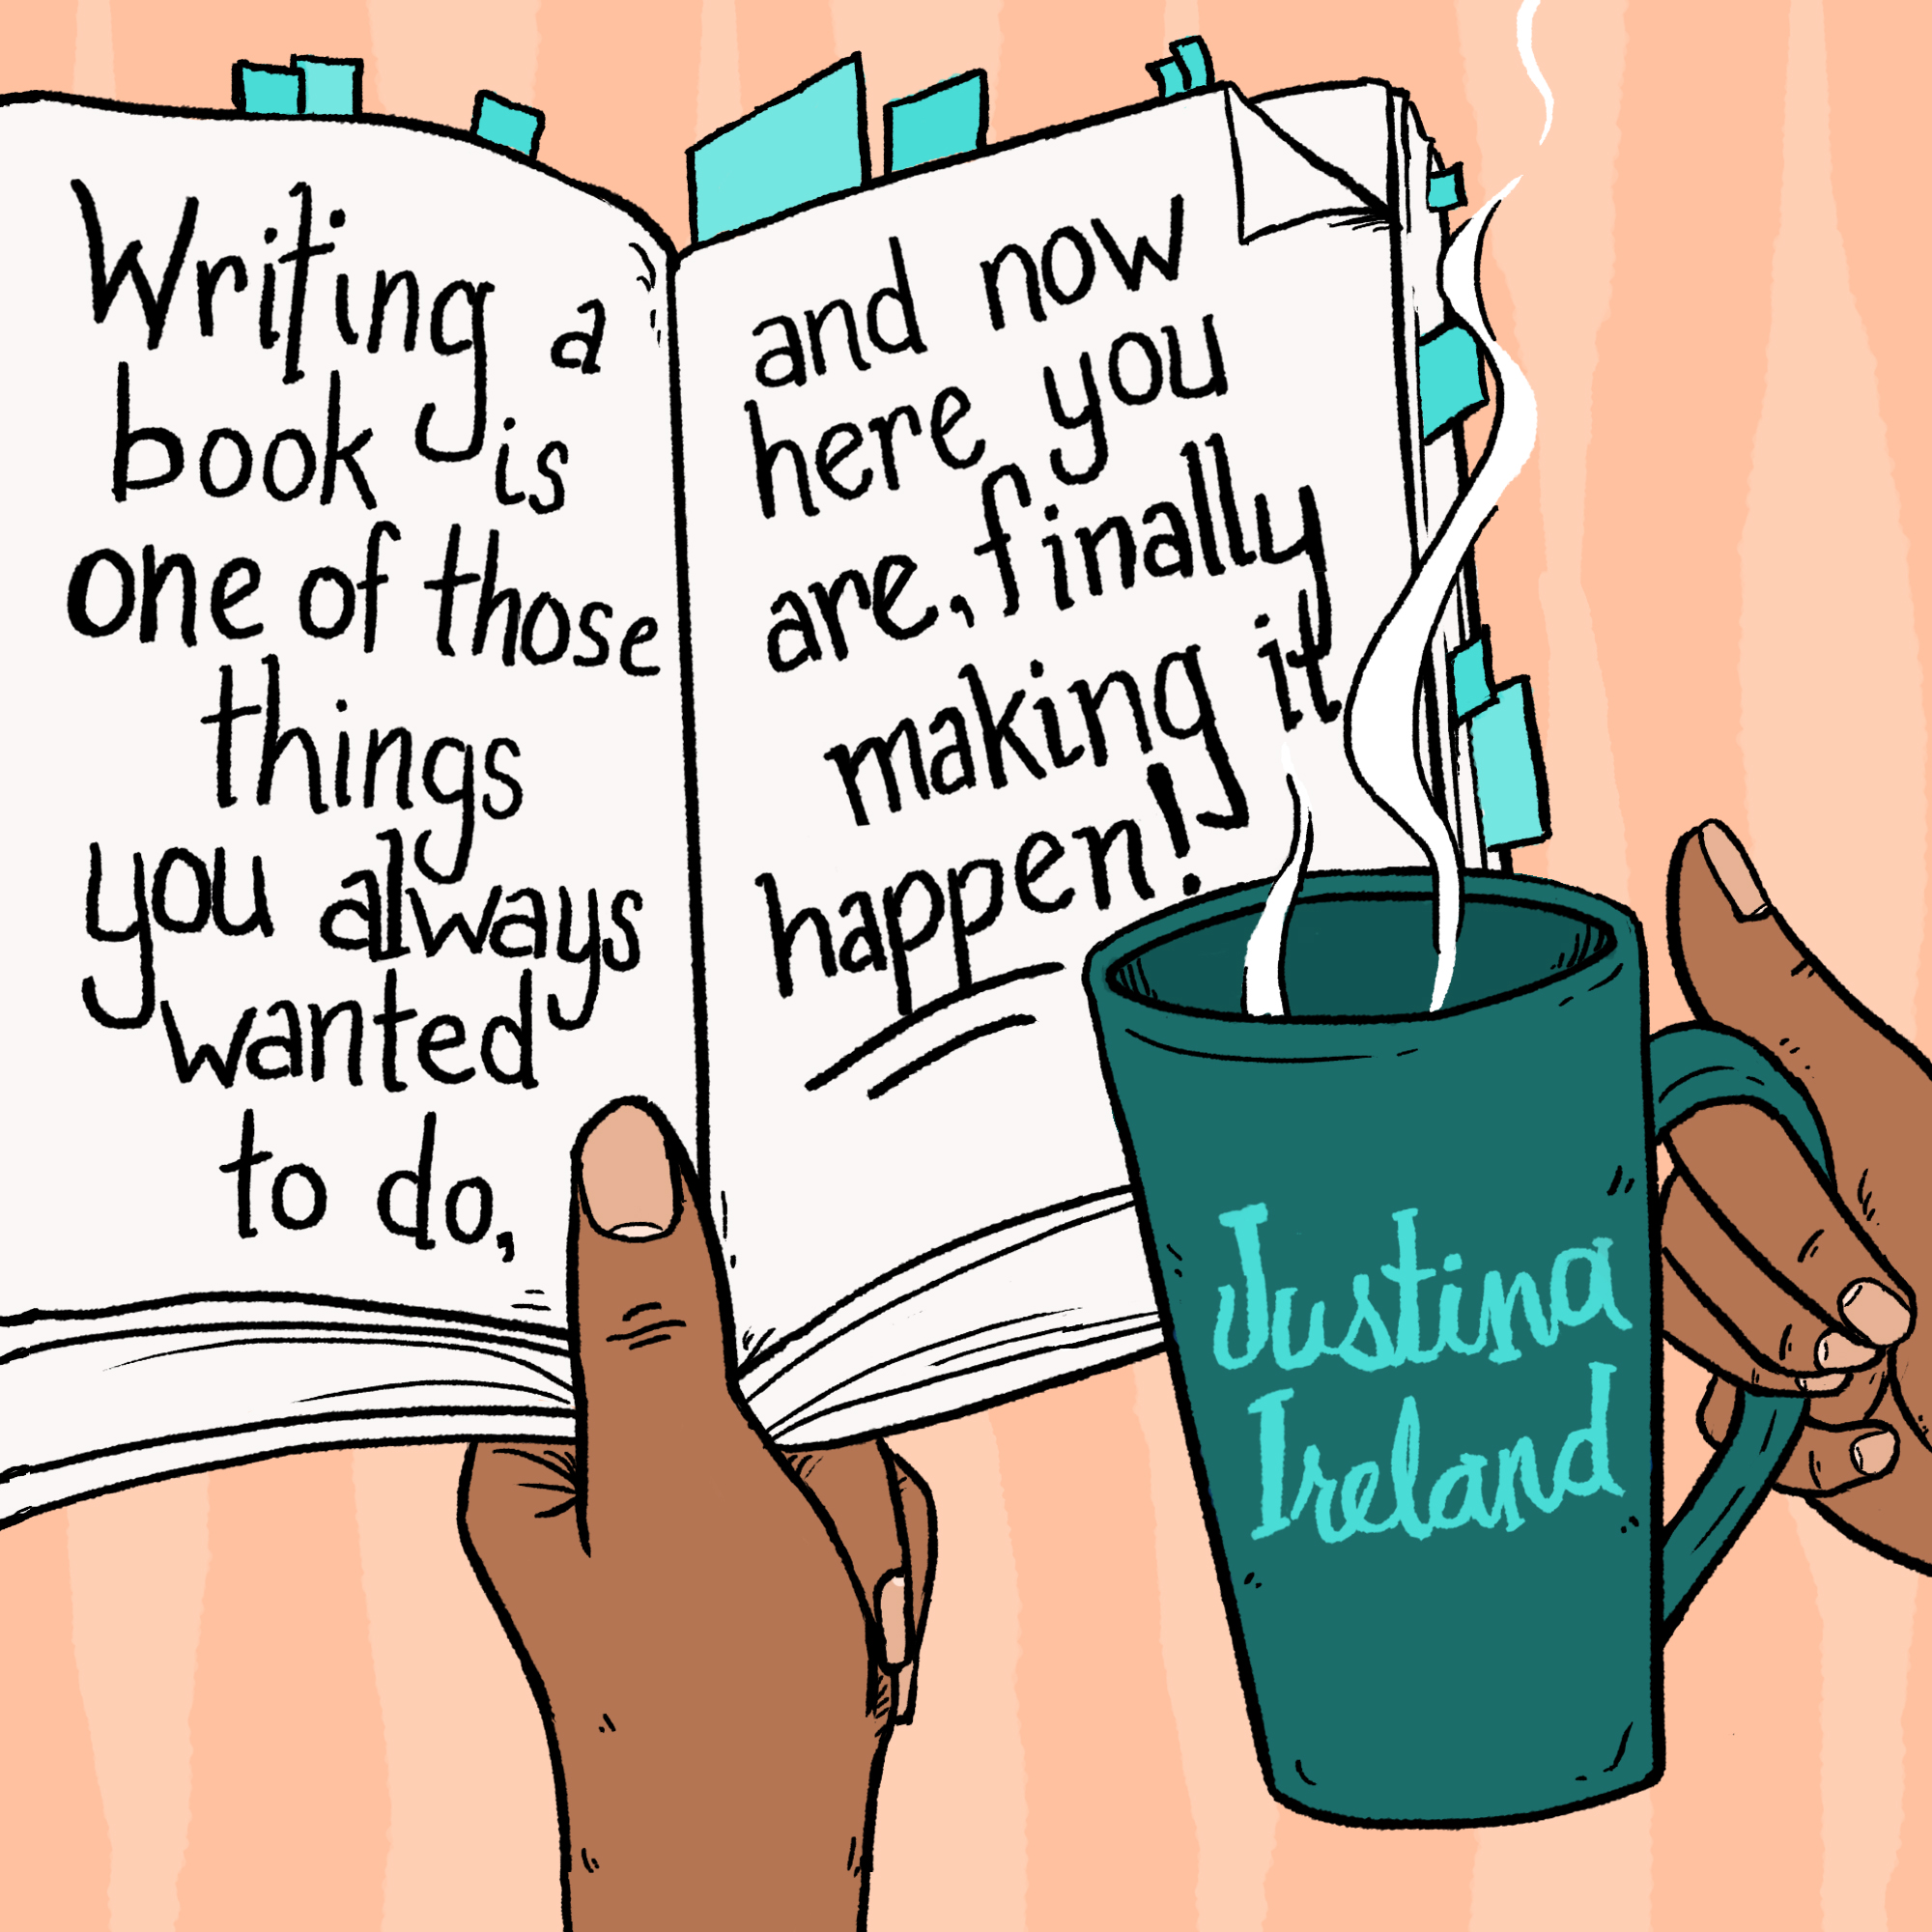 Graphic illustration of an open book with the words of Justina Ireland scrawled across the pages: Writing a book is one of those things you always wanted to do, and now here you are, finally making it happen!